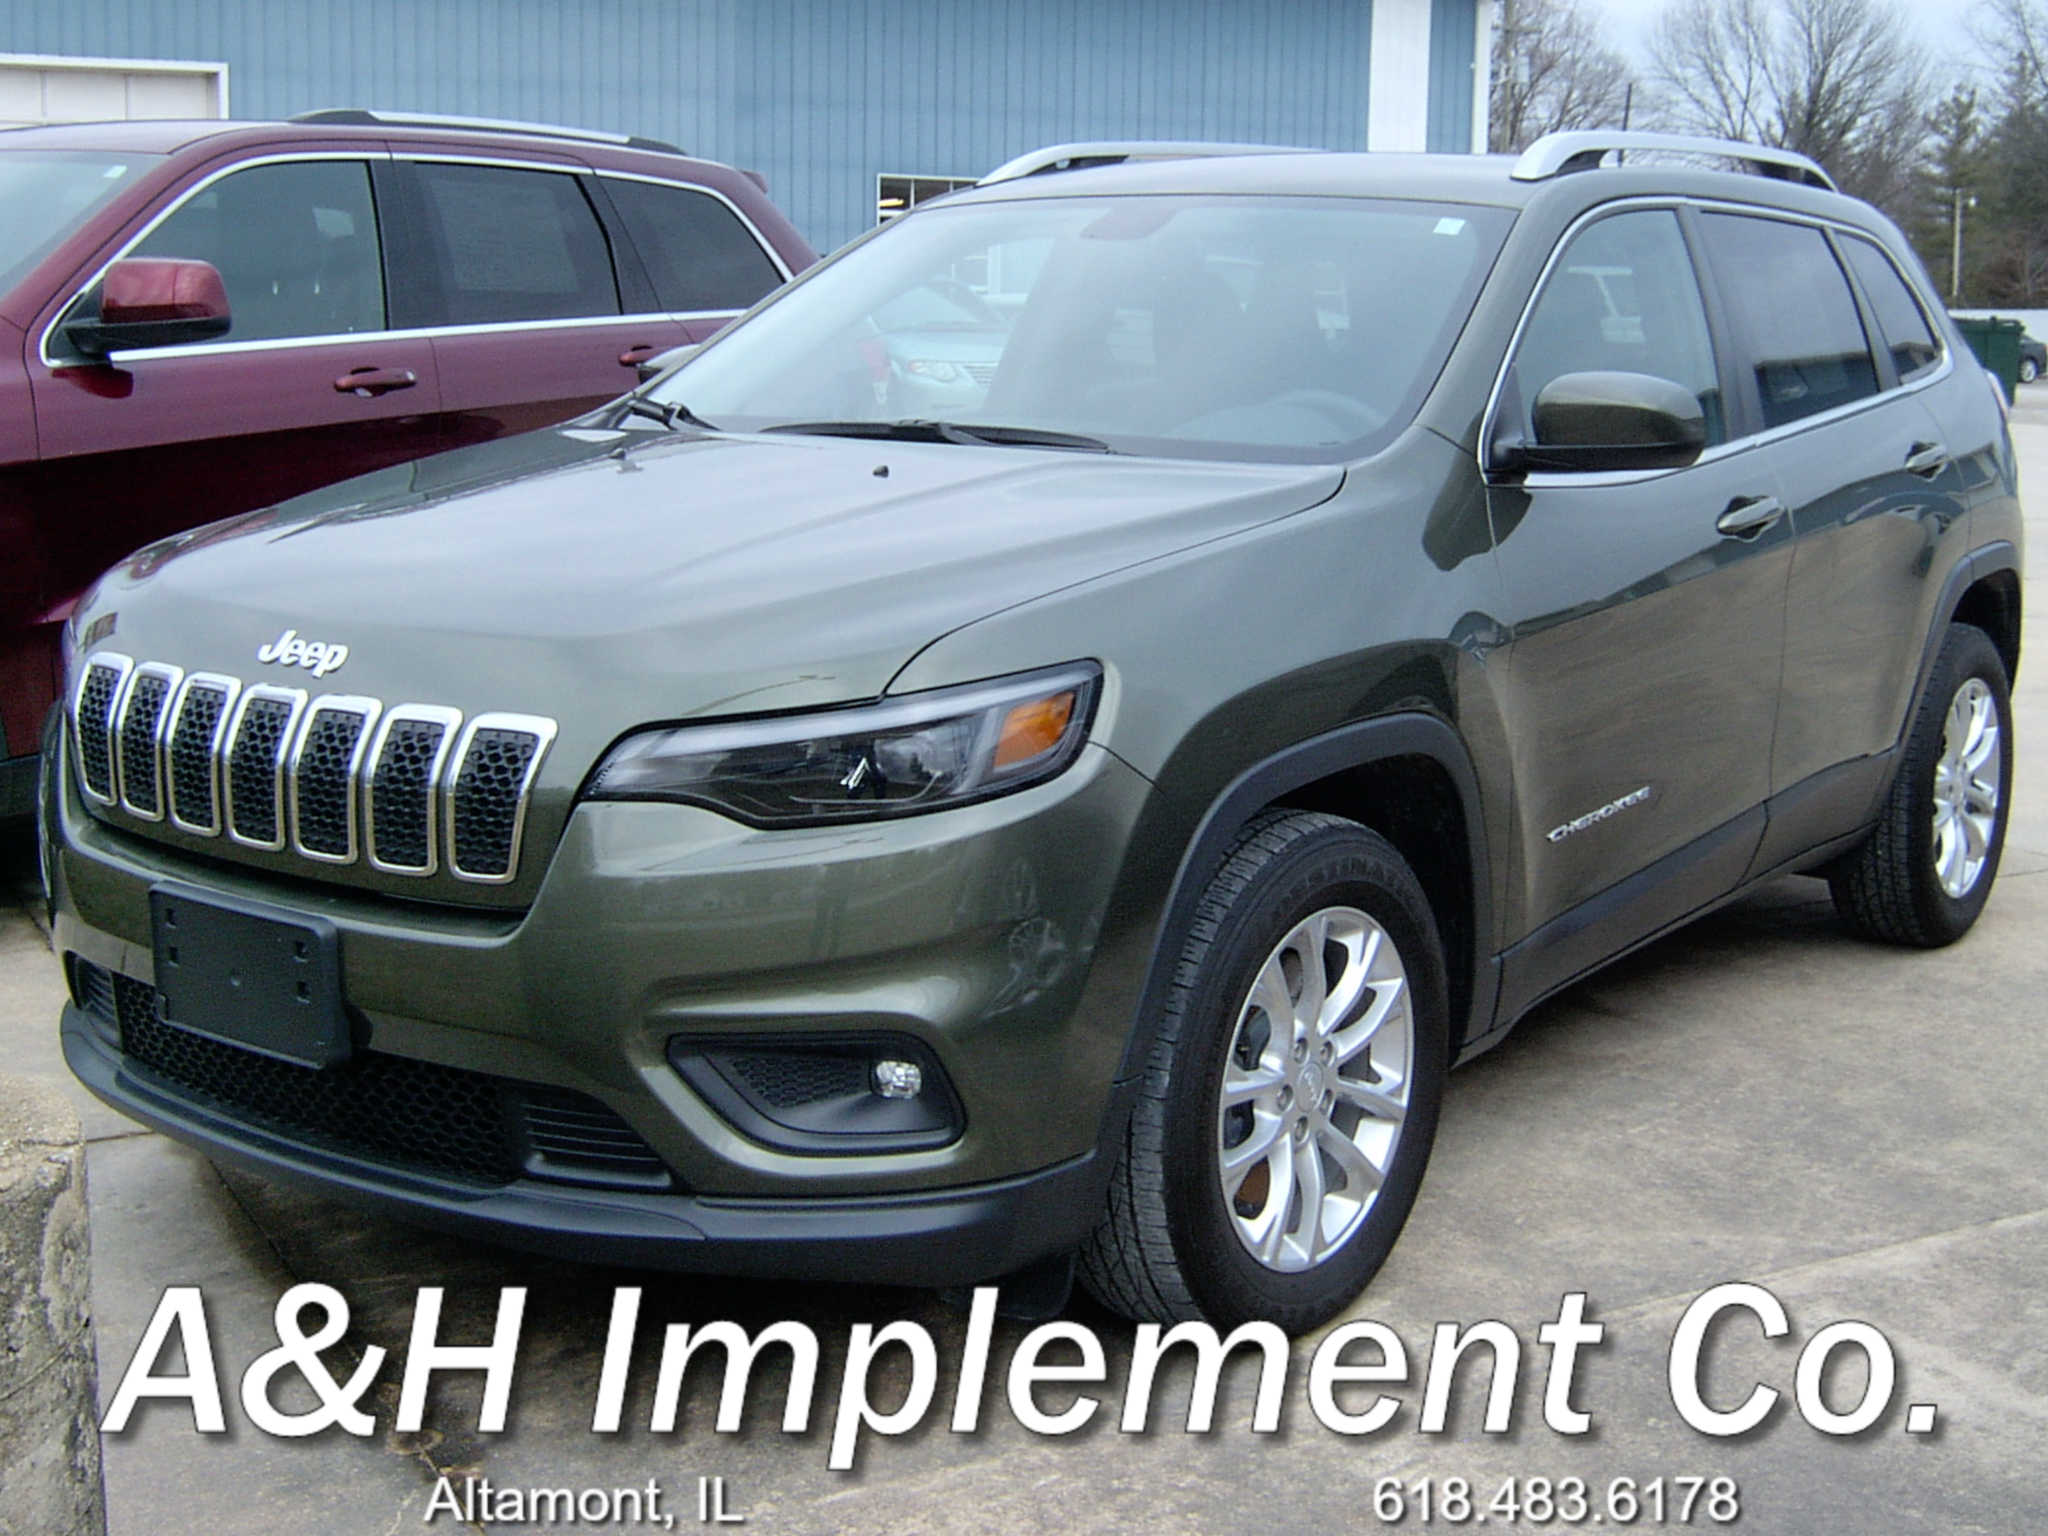 2019 Jeep Cherokee Latitude - Green 1